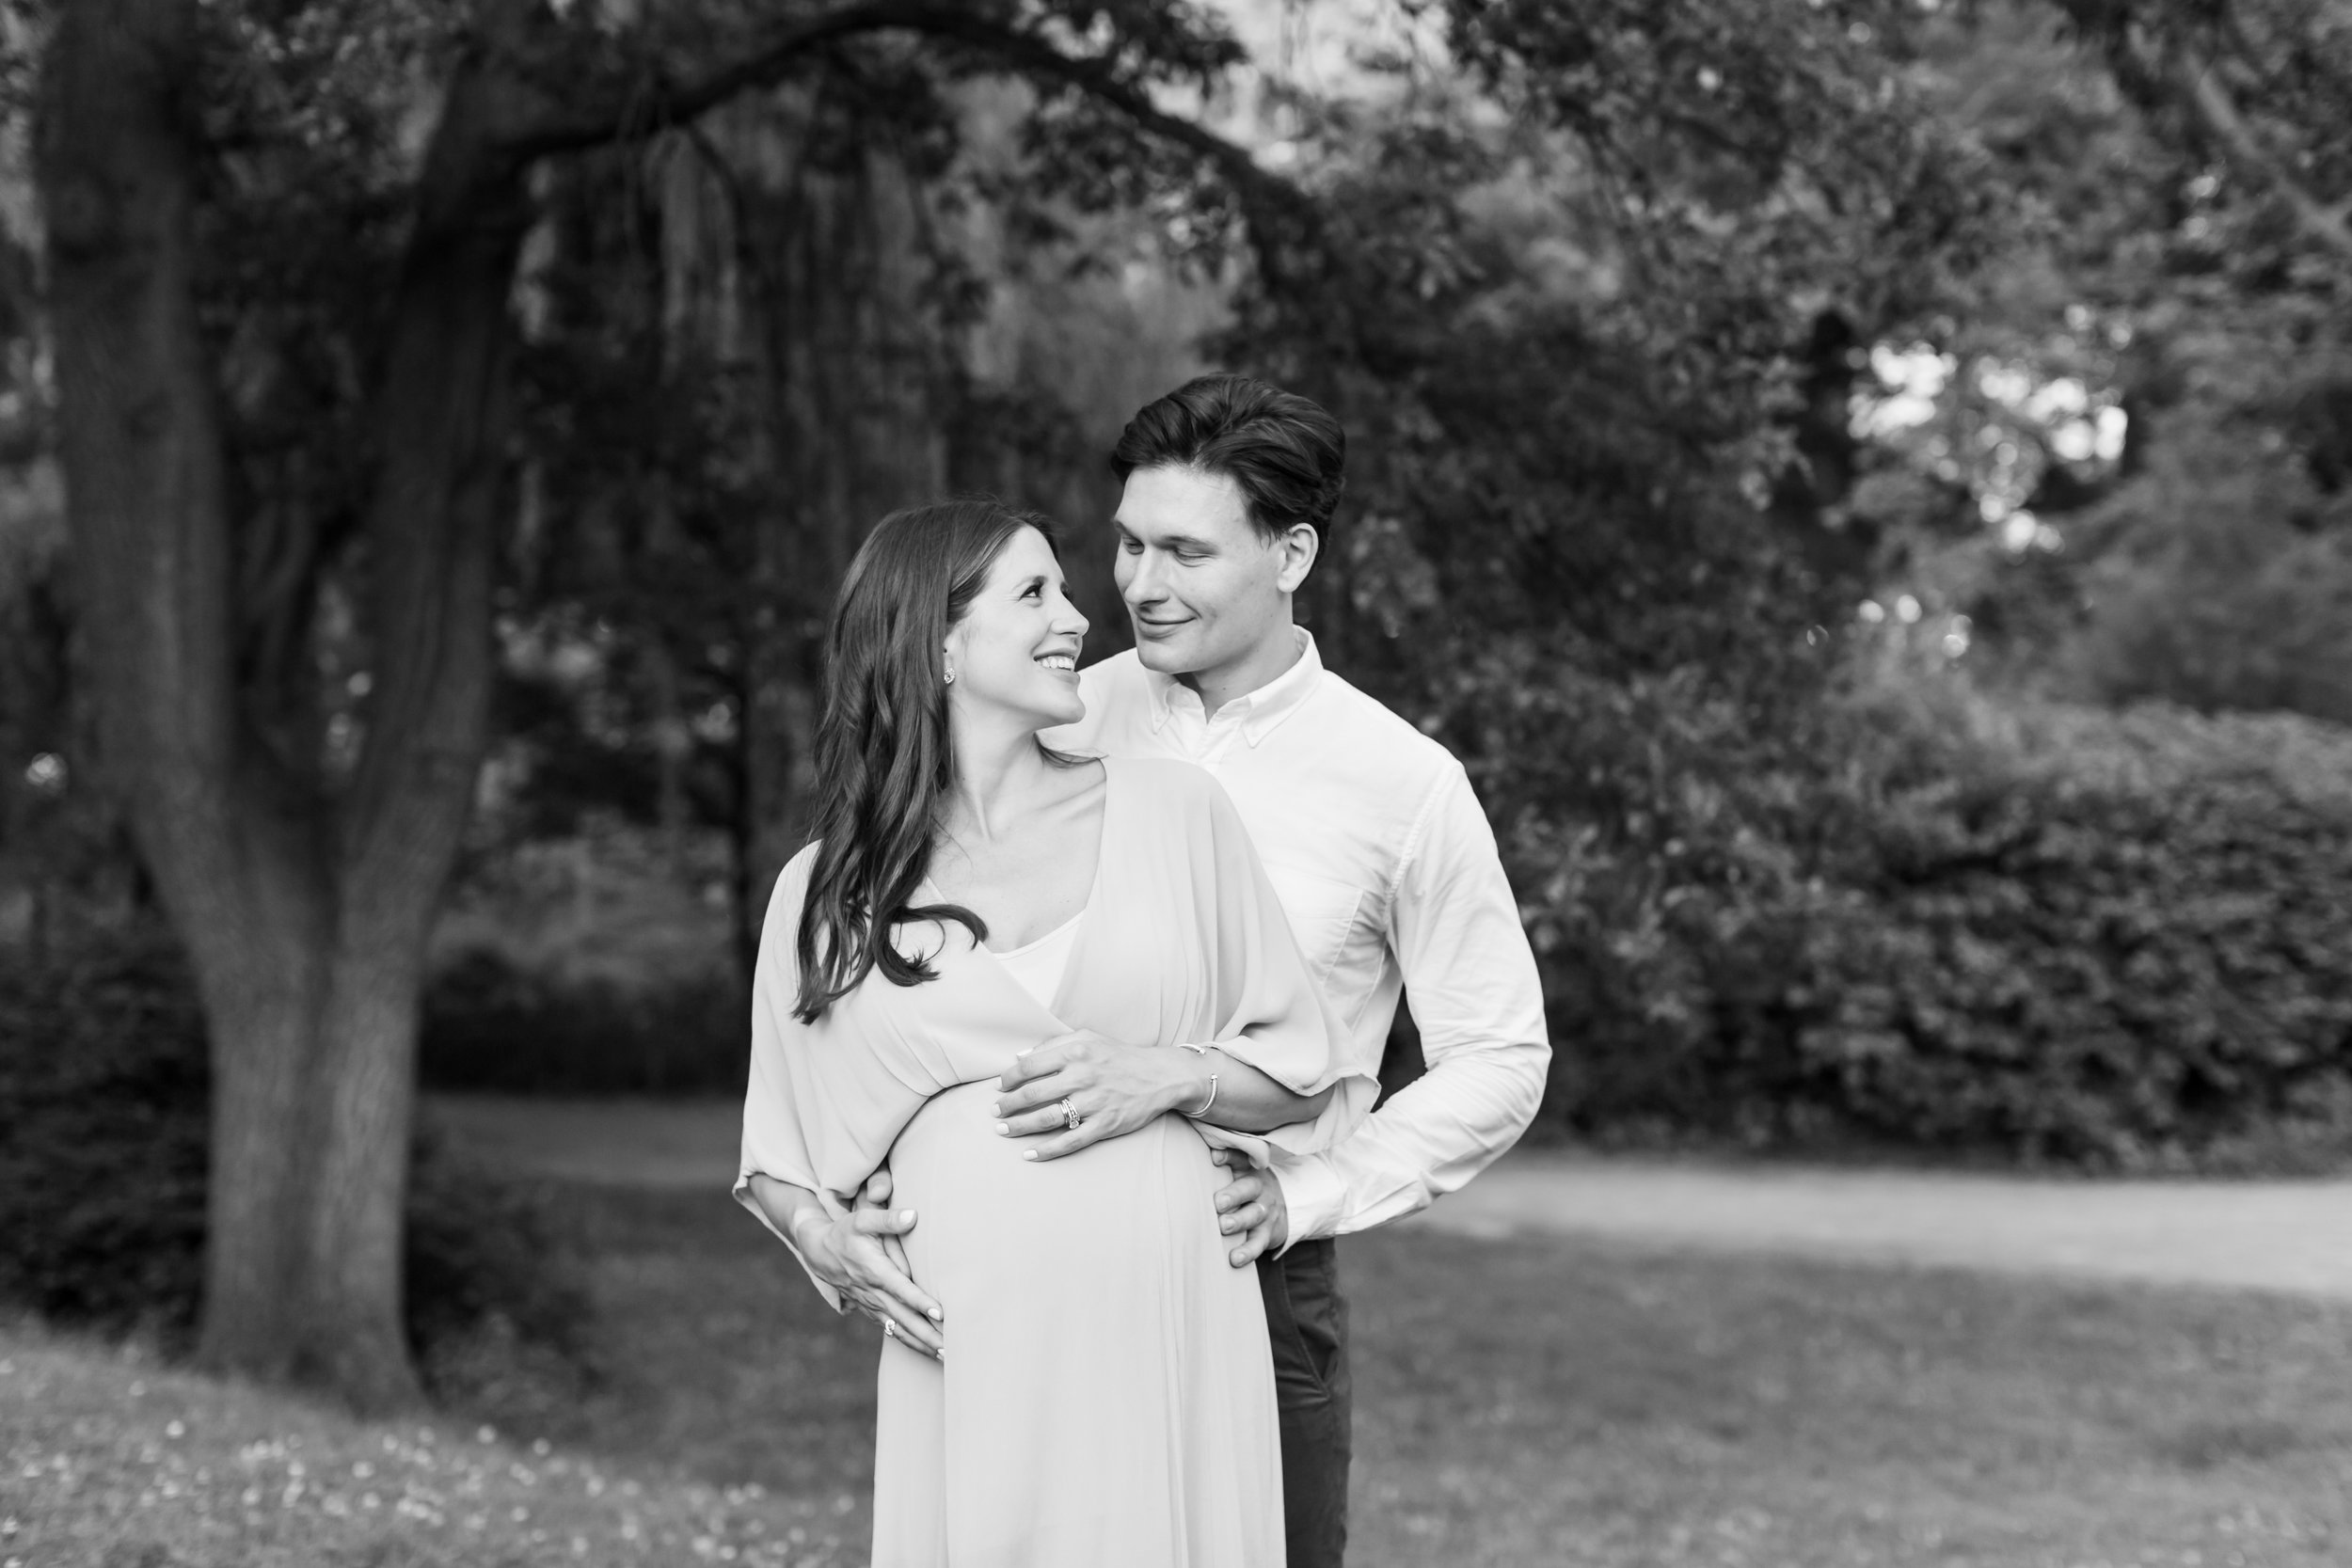 Black and White Maternity photograph in Central Park Manhattan NYC by Helene Stype